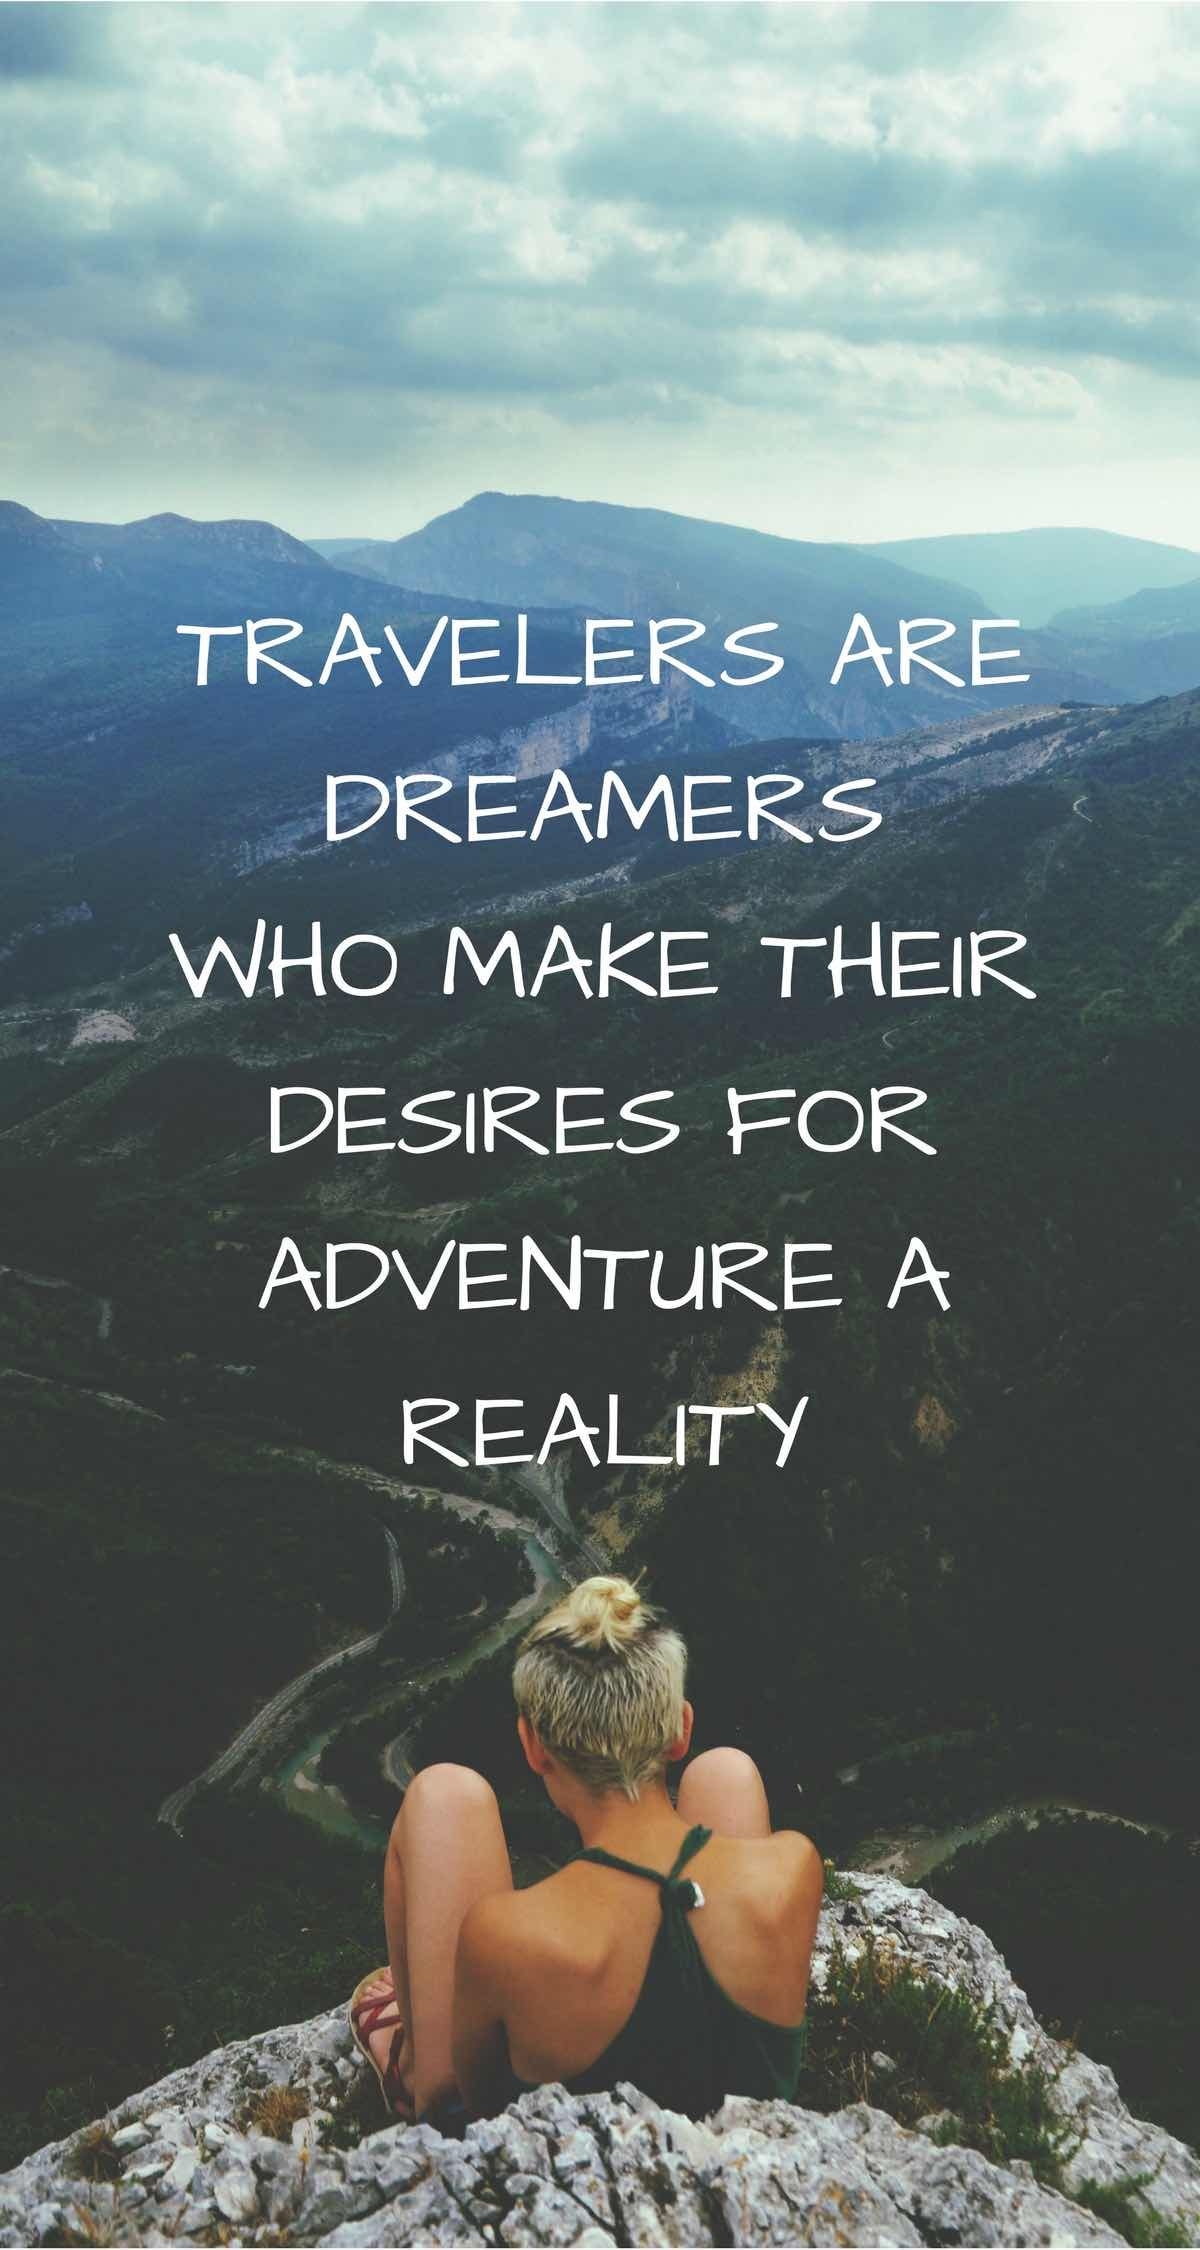 travelers are dreamers make adventure a reality quote - girl looking over mountains